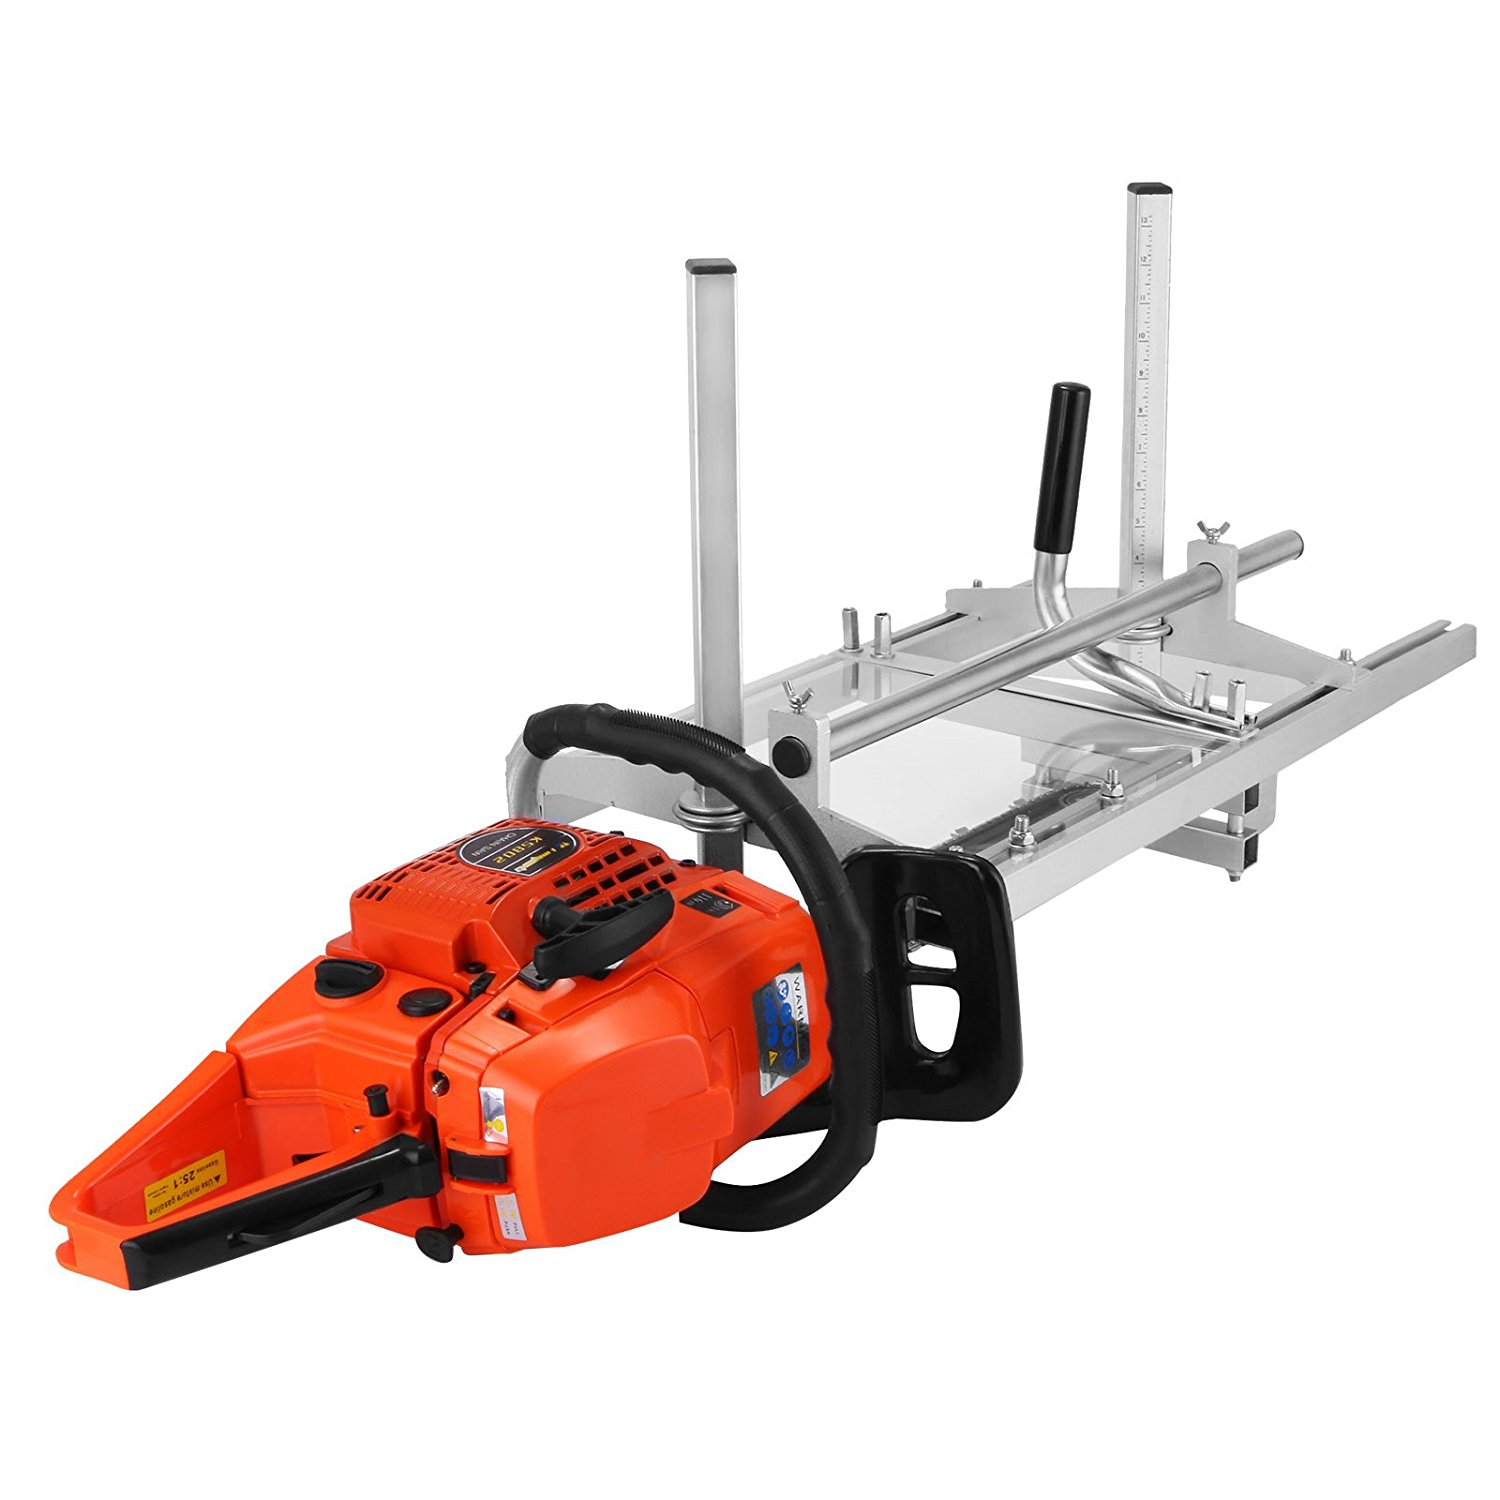 """Vinbero 14 Inch - 36 Inch Saw Mill Portable Chain Sawmill Attachment Planking Milling Cutting Guide Bar Fits for Chainsaw Bars up to 14""""-36"""" (Chainsaw not Included)"""